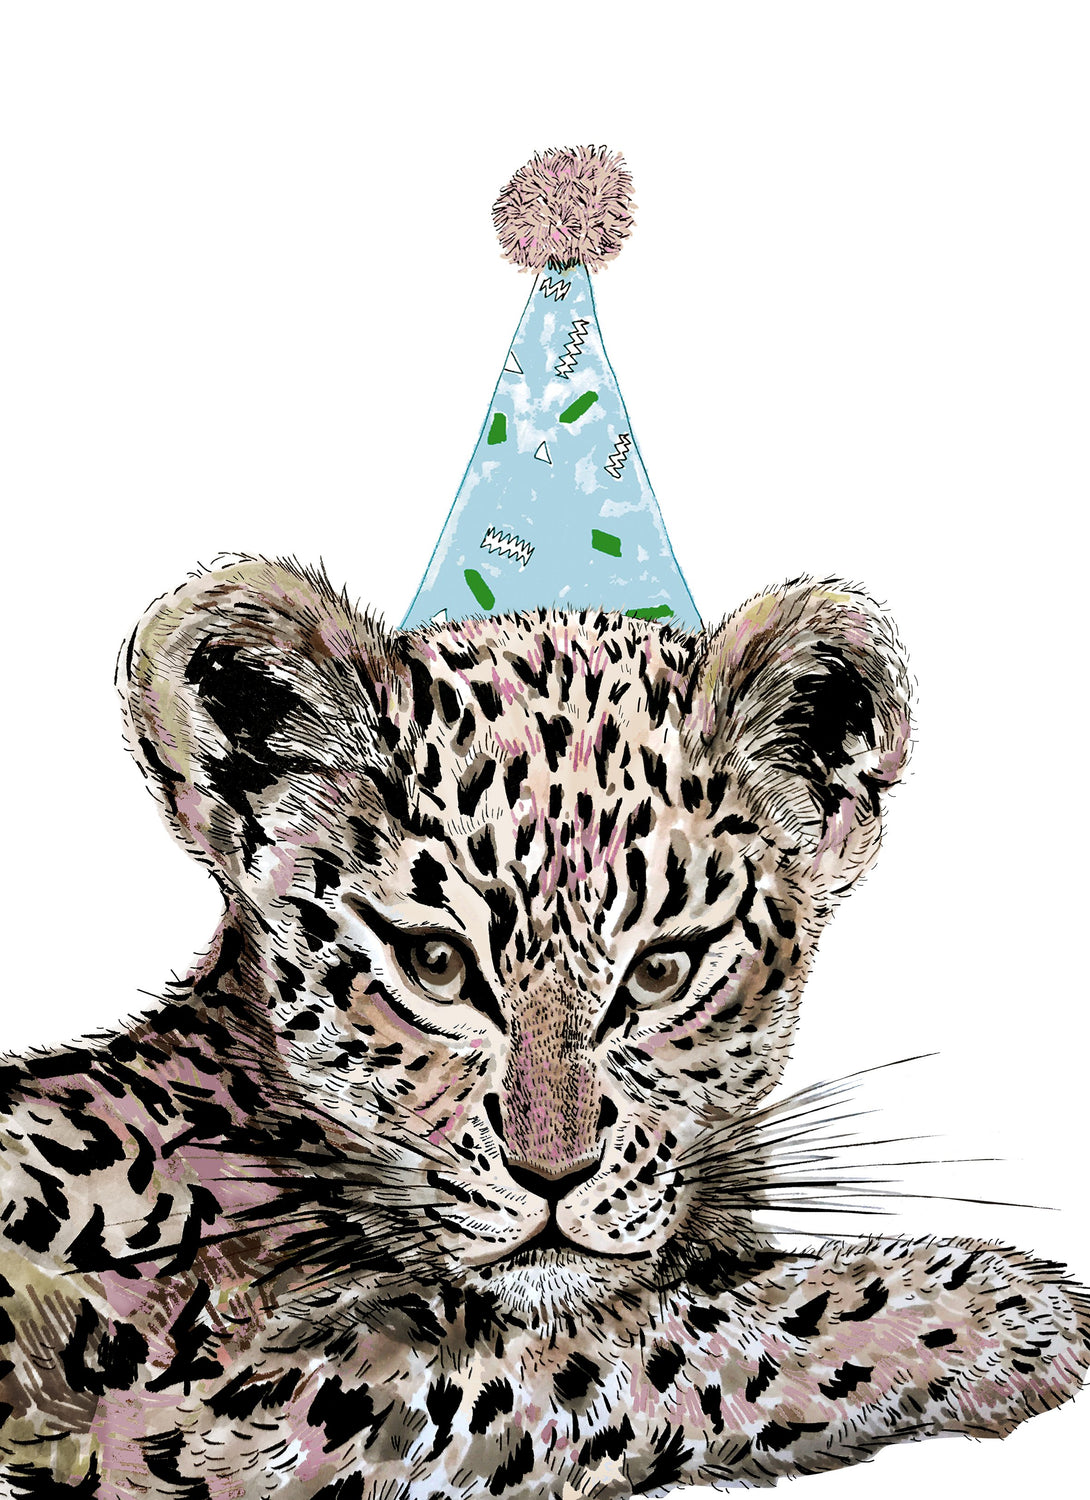 Party Leopard Giclée Print